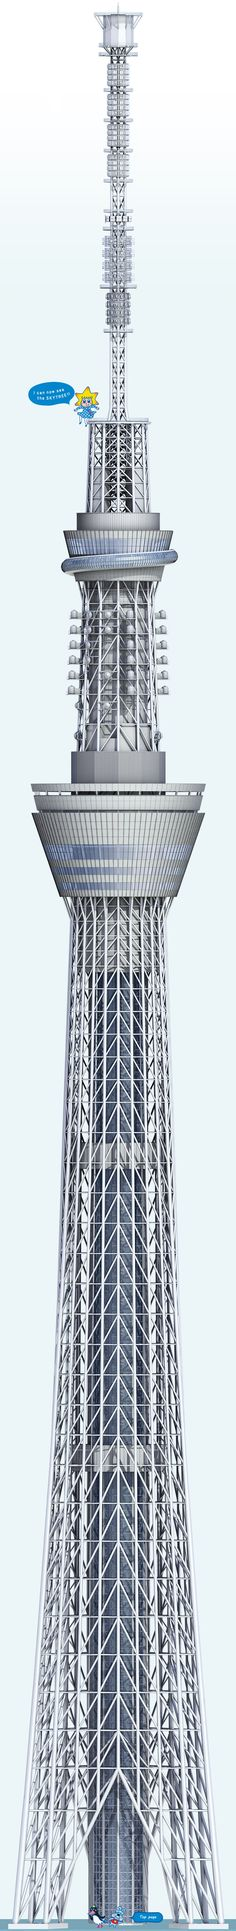 On May 22 the Tokyo Skytree Tower opened, providing access to its observation decks. It is the second-tallest structure in the world, behind the Burj Khalifa in Dubai.